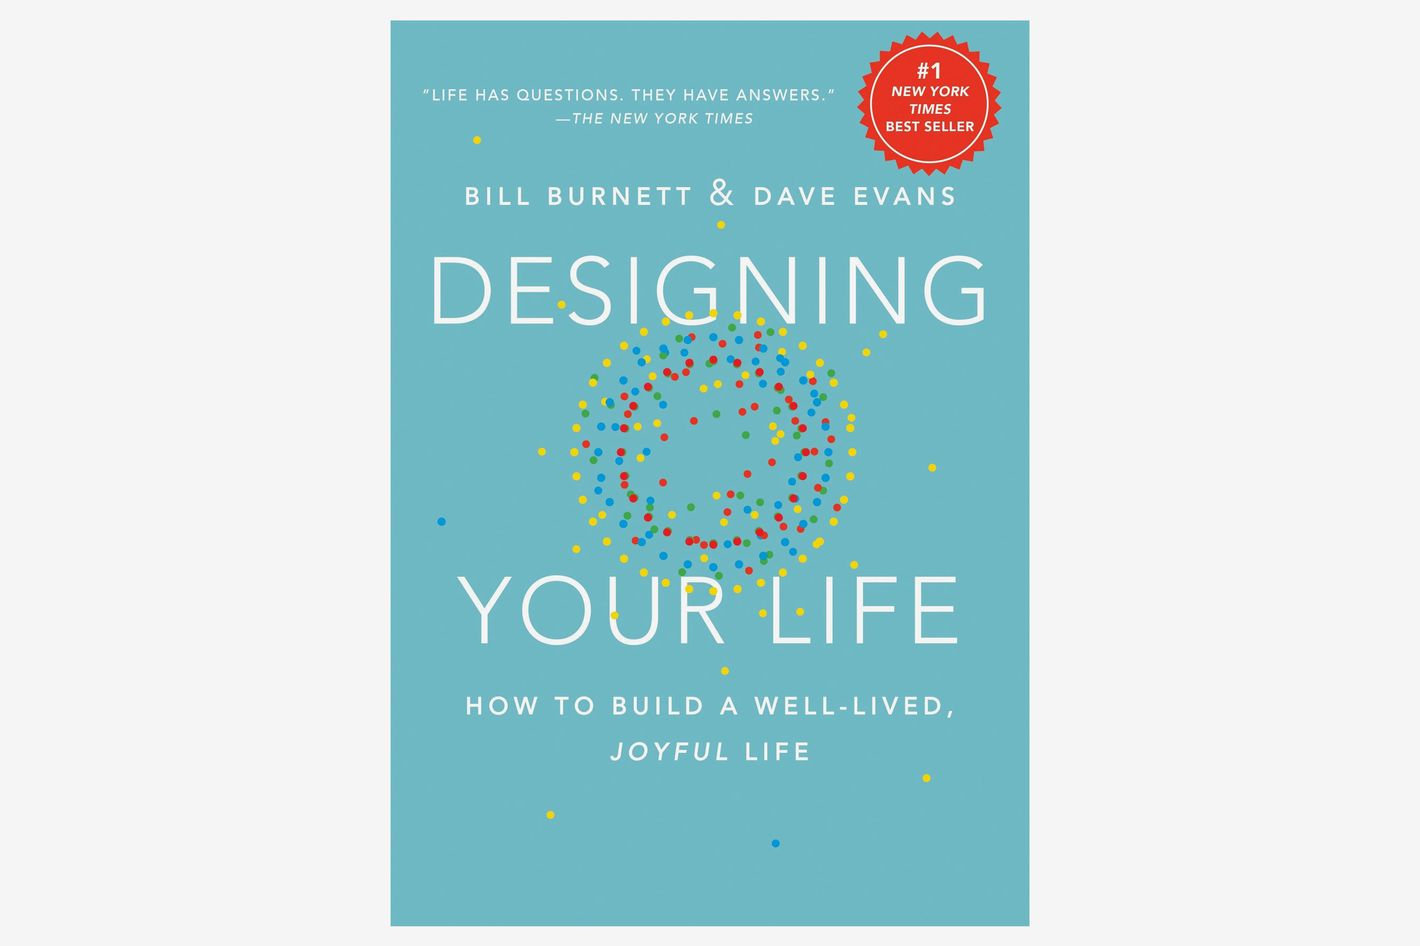 <em>Designing Your Life: How to Build a Well-Lived, Joyful Life</em>, by Bill Burnett and Dave Evans